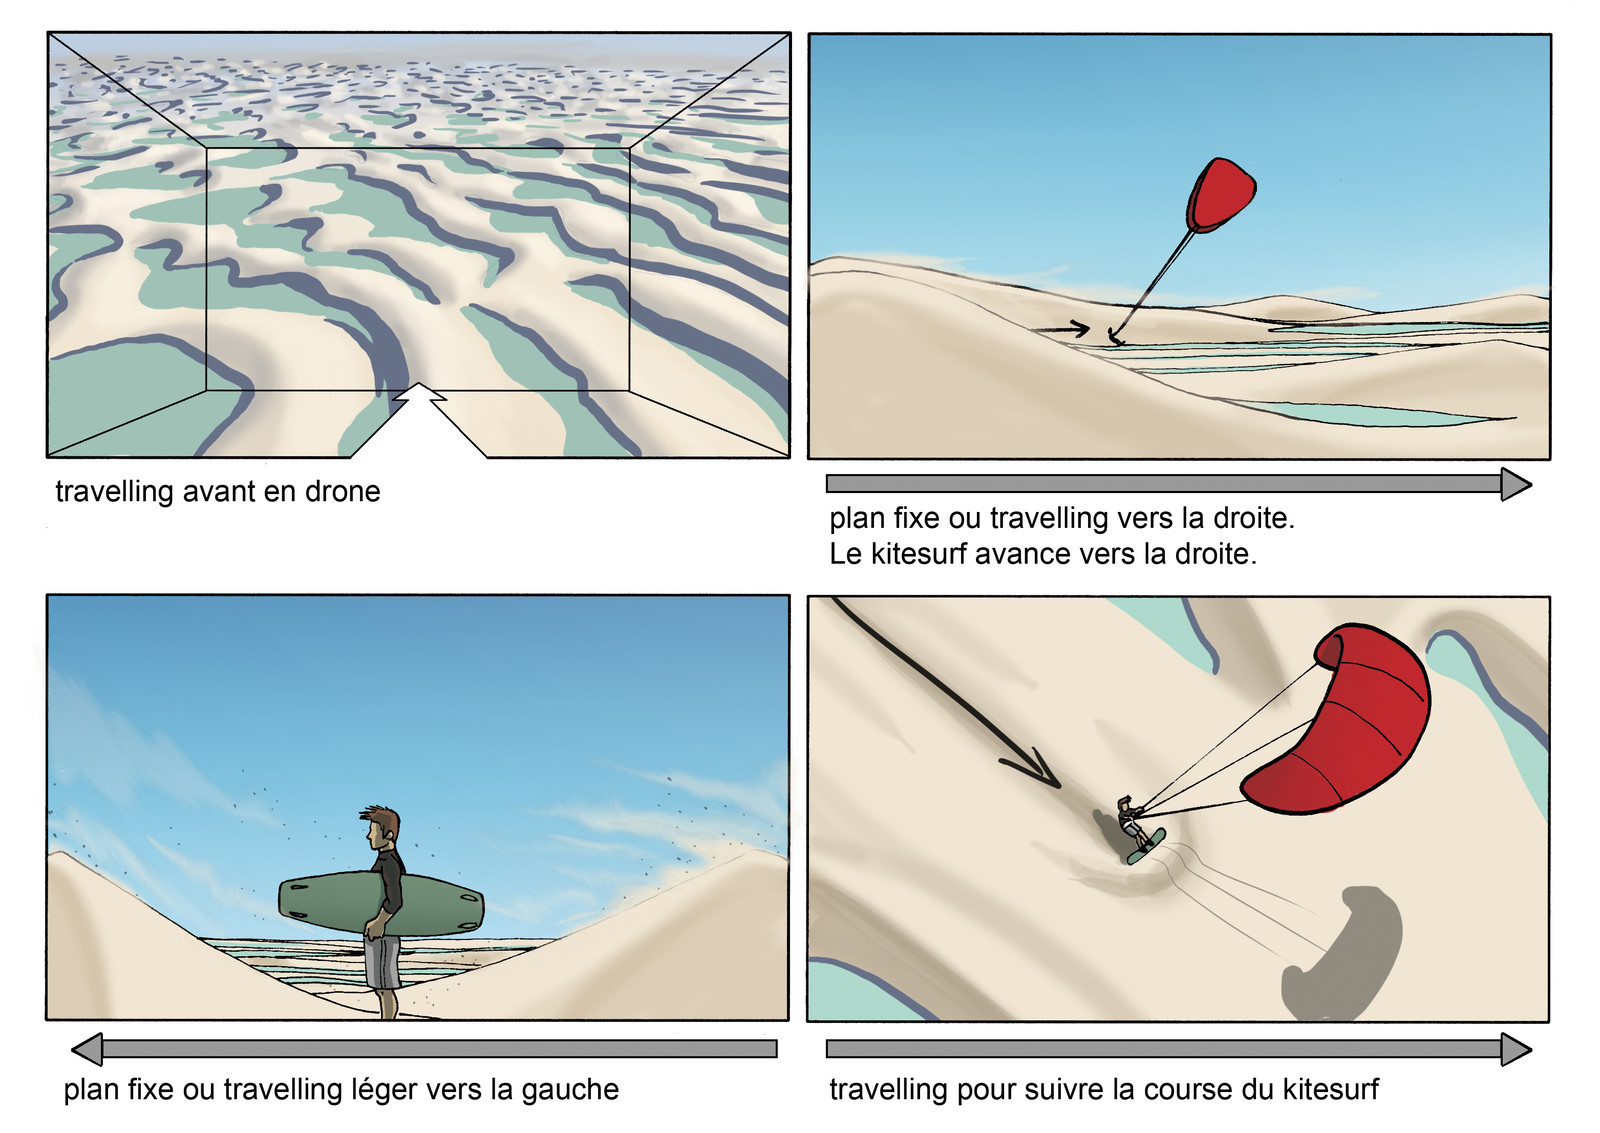 Storyboard for an advertising about KiteSurf  - Page 1 - (In French)